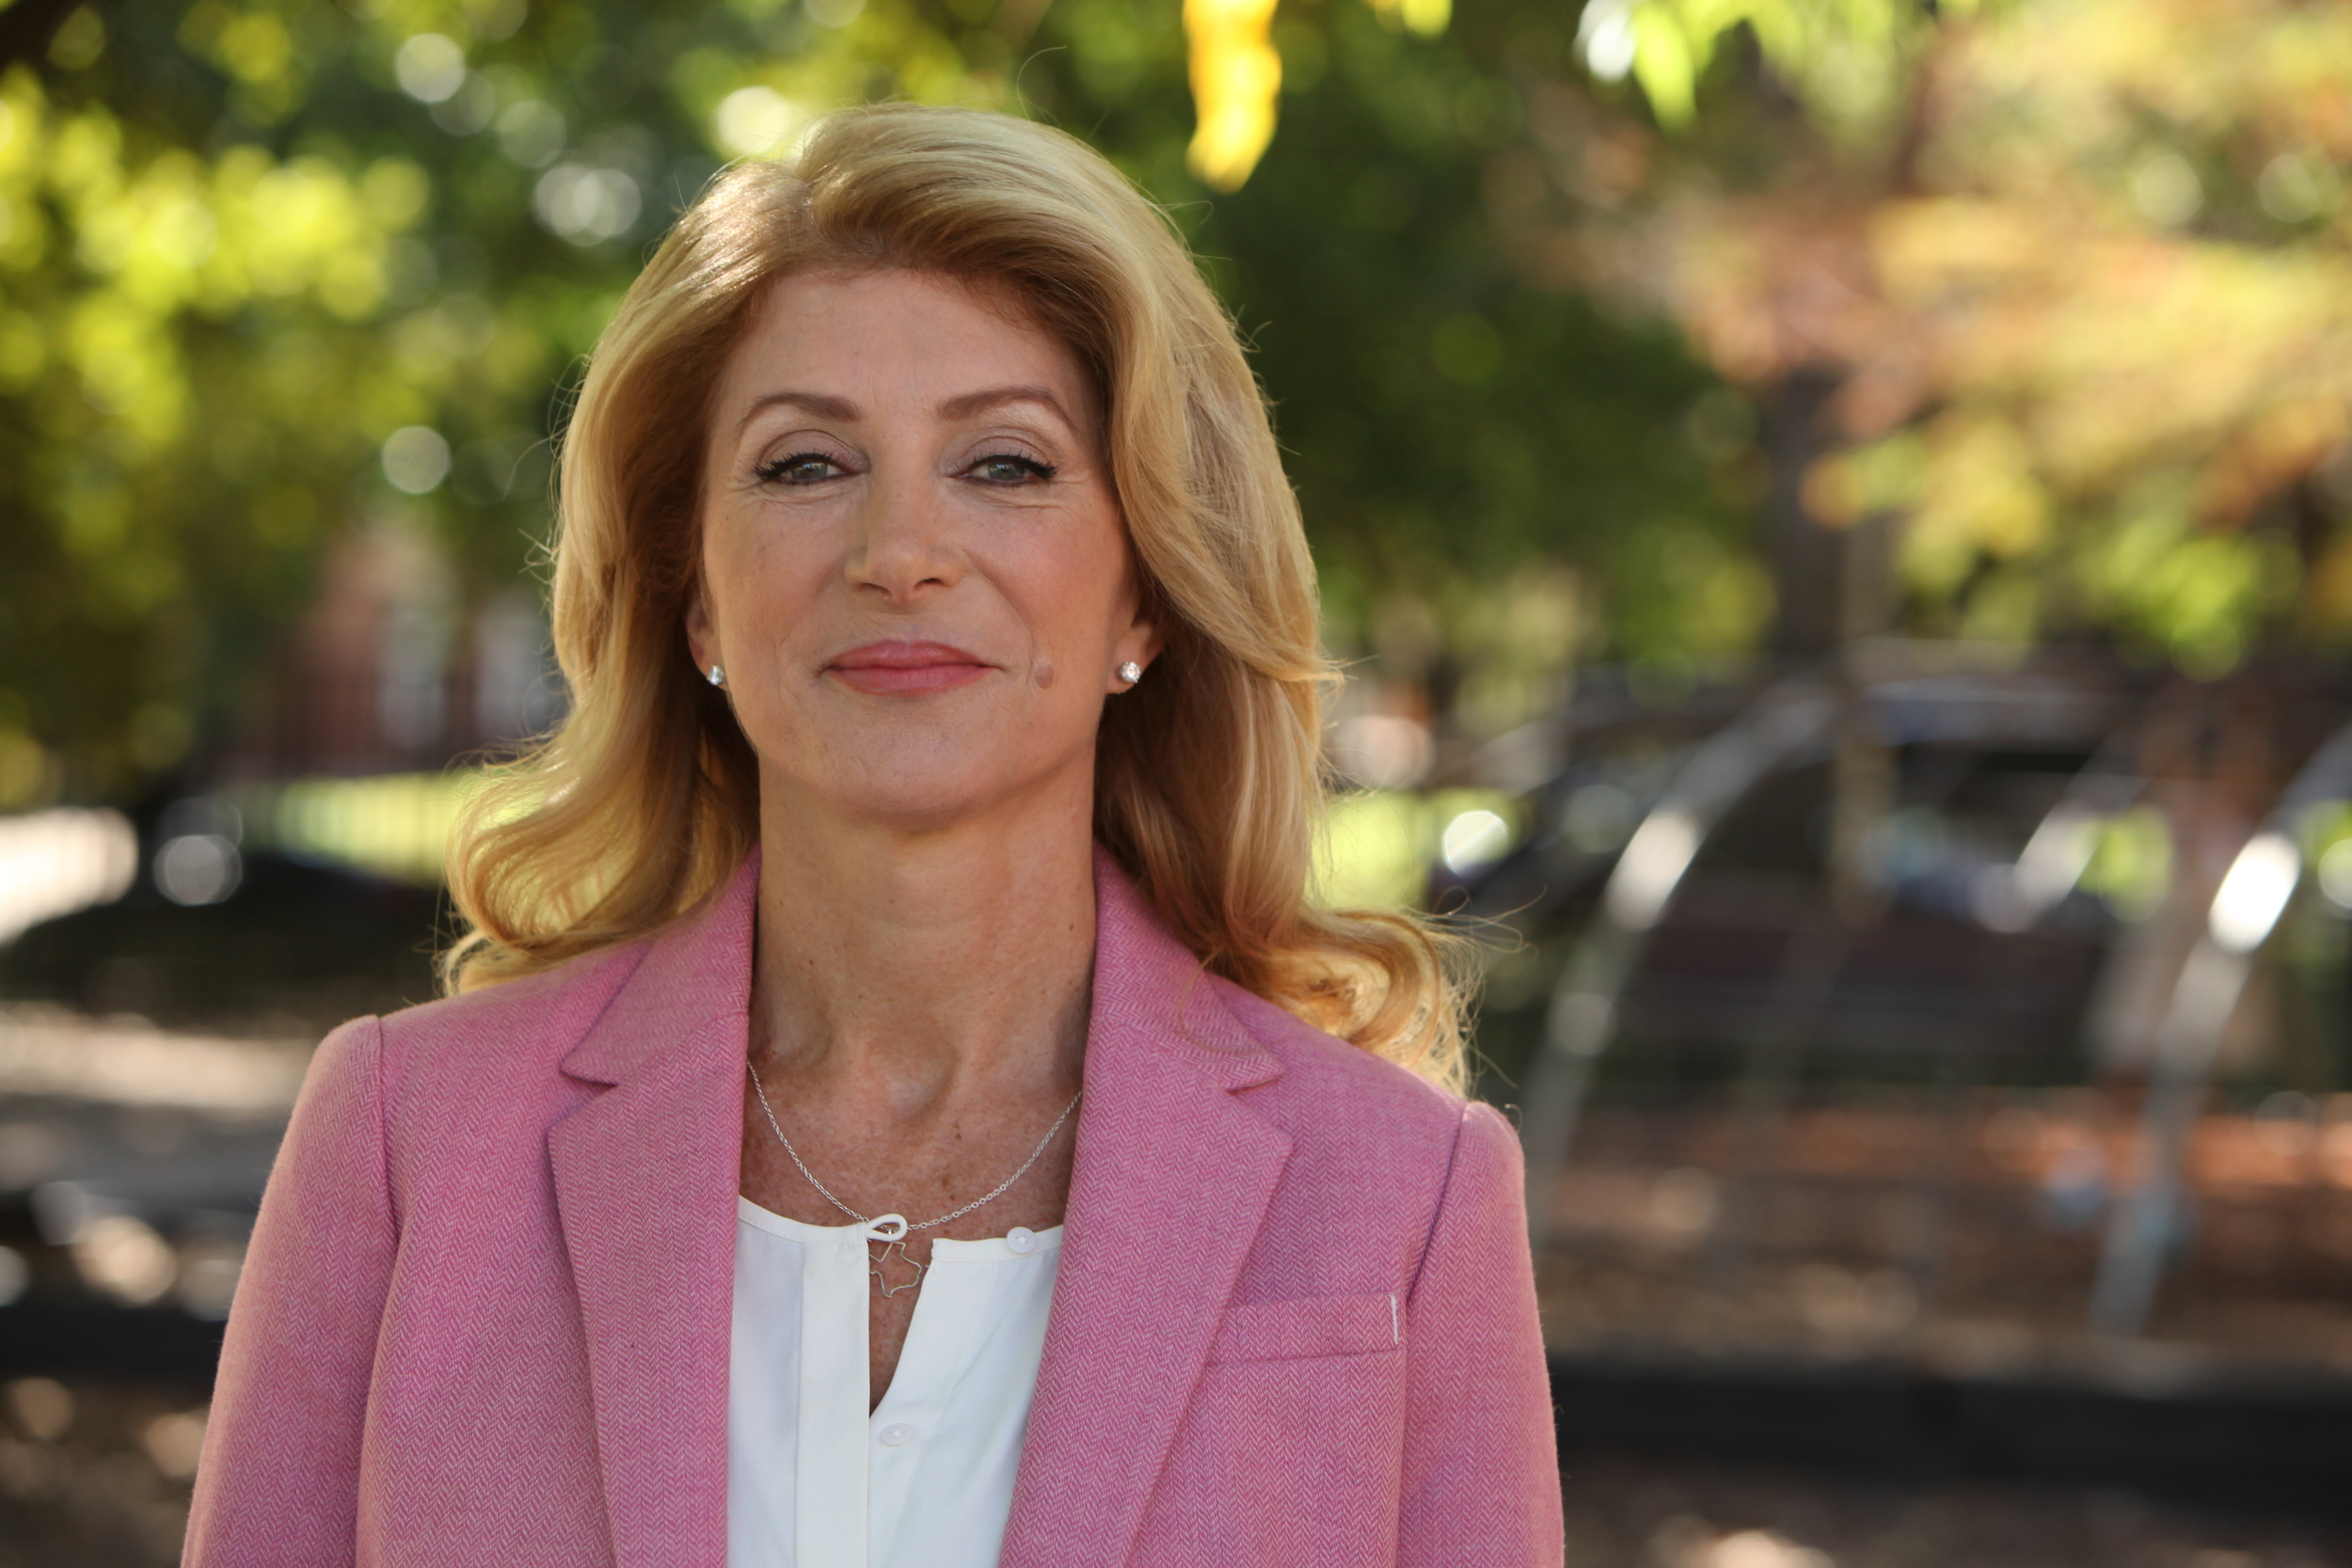 Pictured: Wendy Davis. Courtesy of  Deeds Not Words